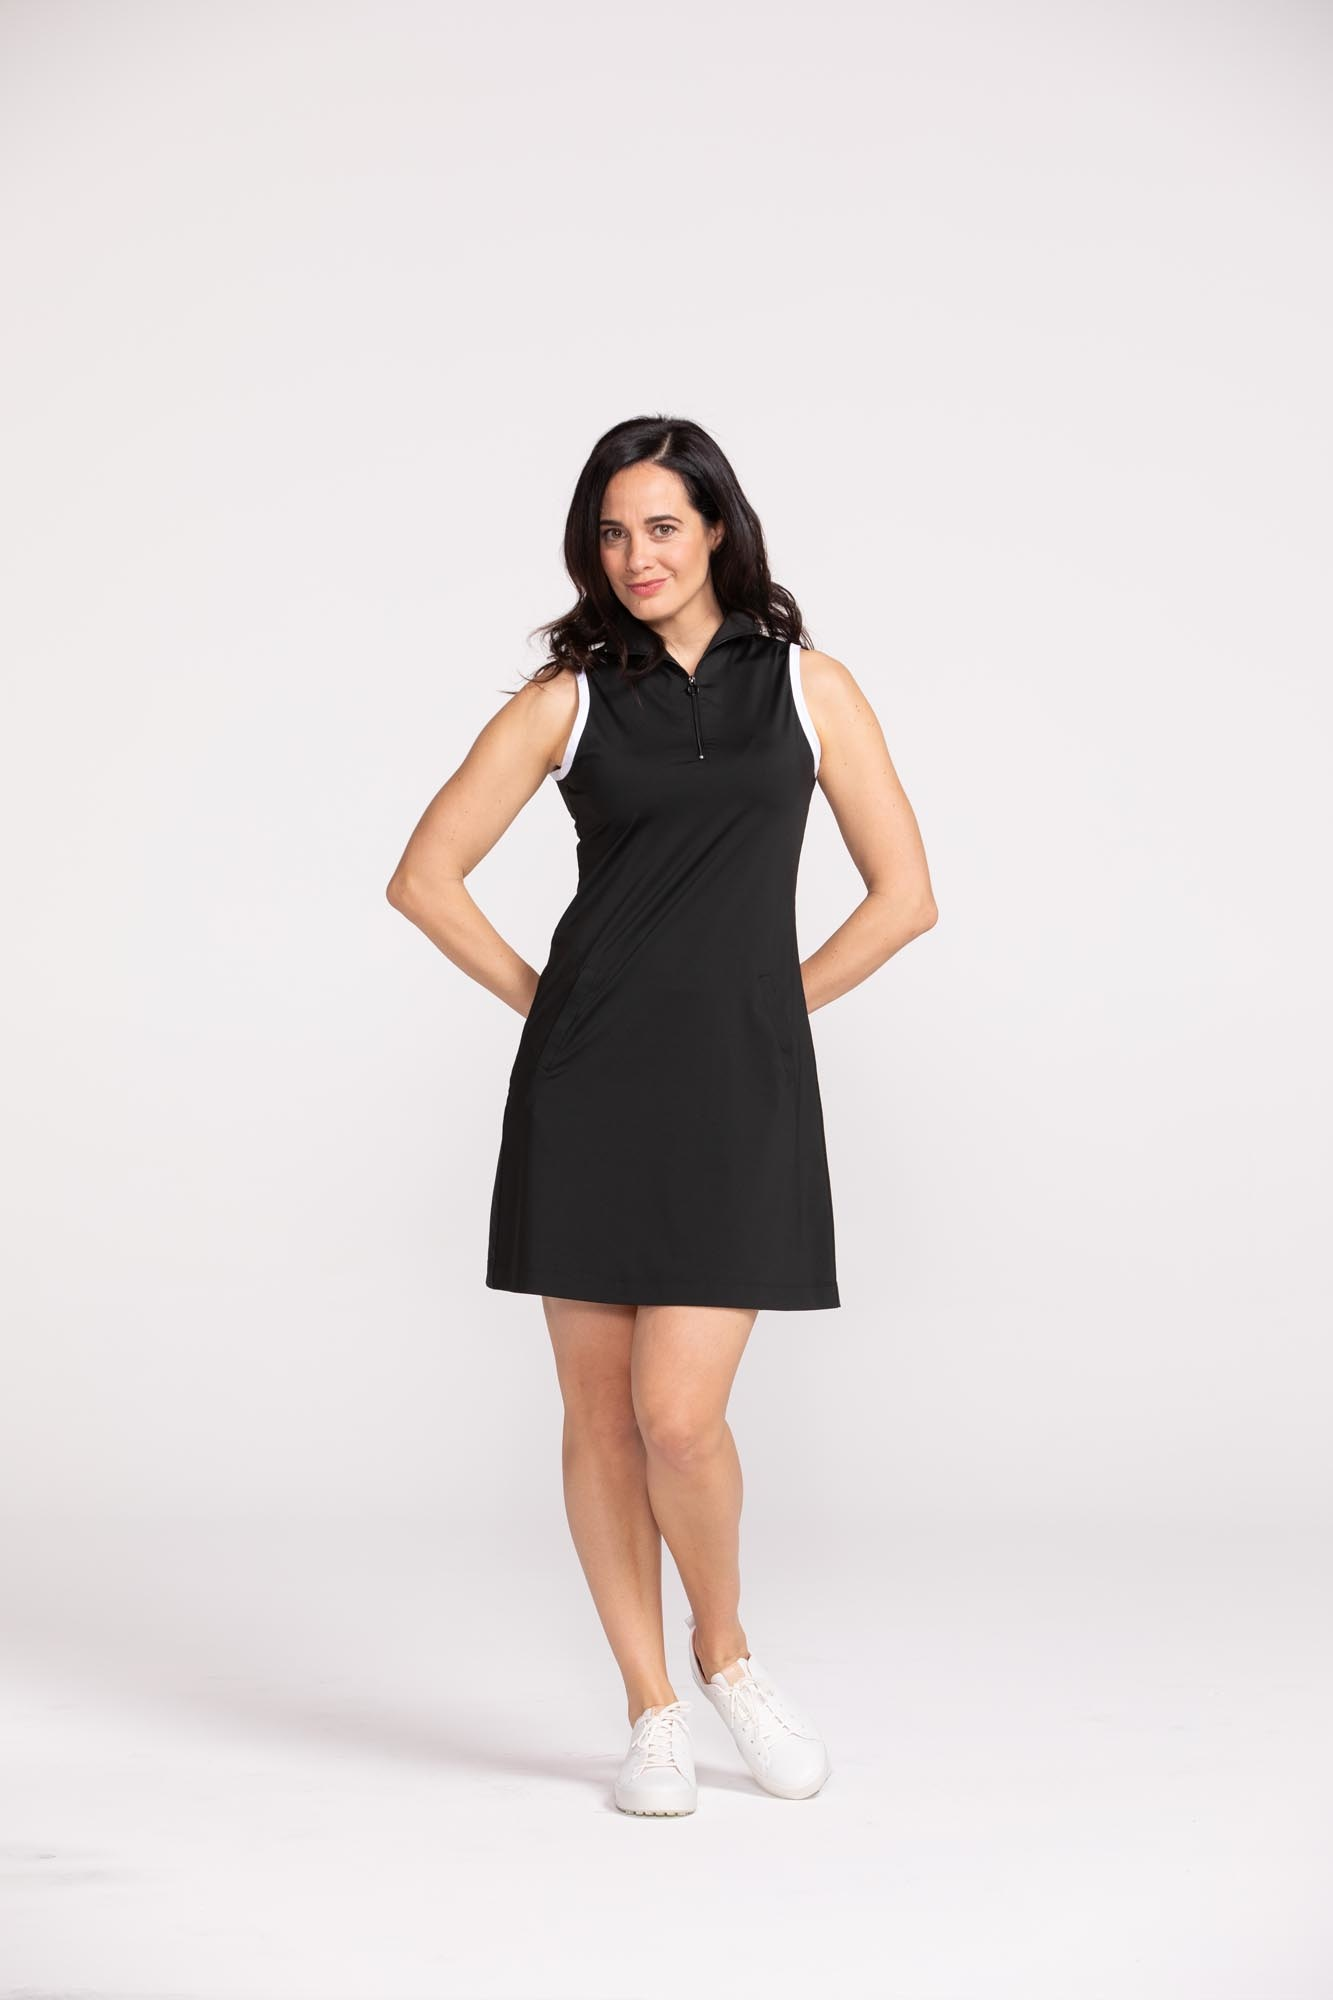 Kinona Kinona Simply Chic Sleeveless Golf Dress Black